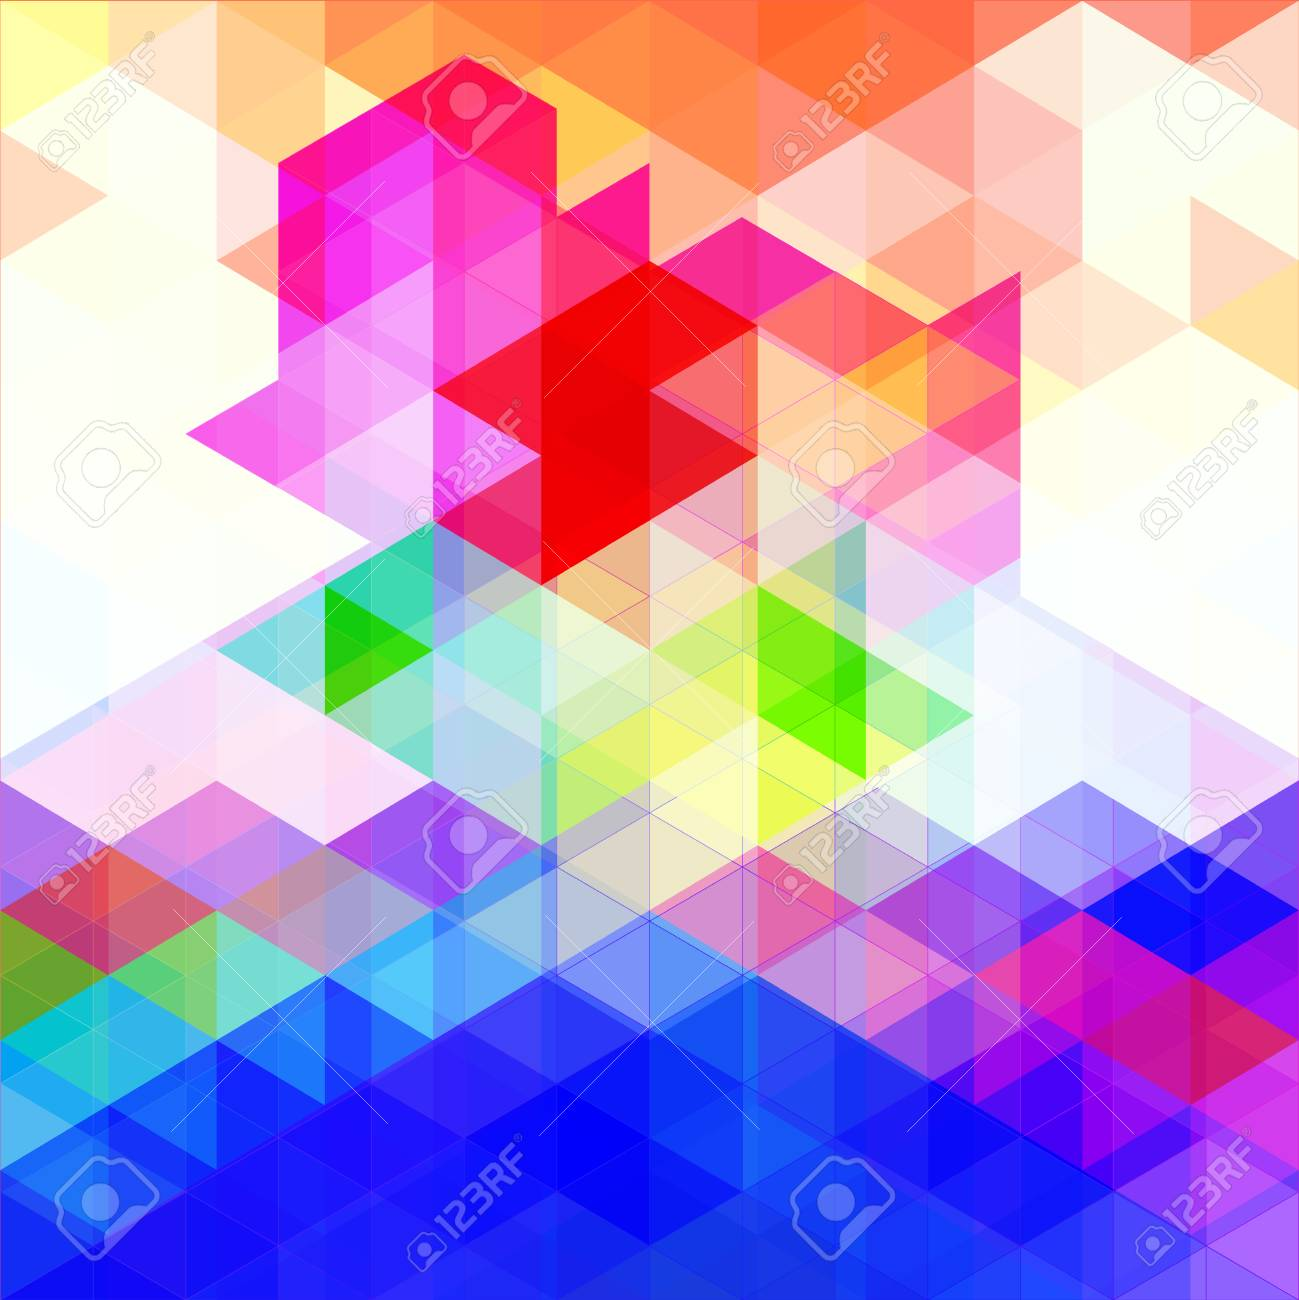 Abstract Triangular Background With Blue Red Green Yellow